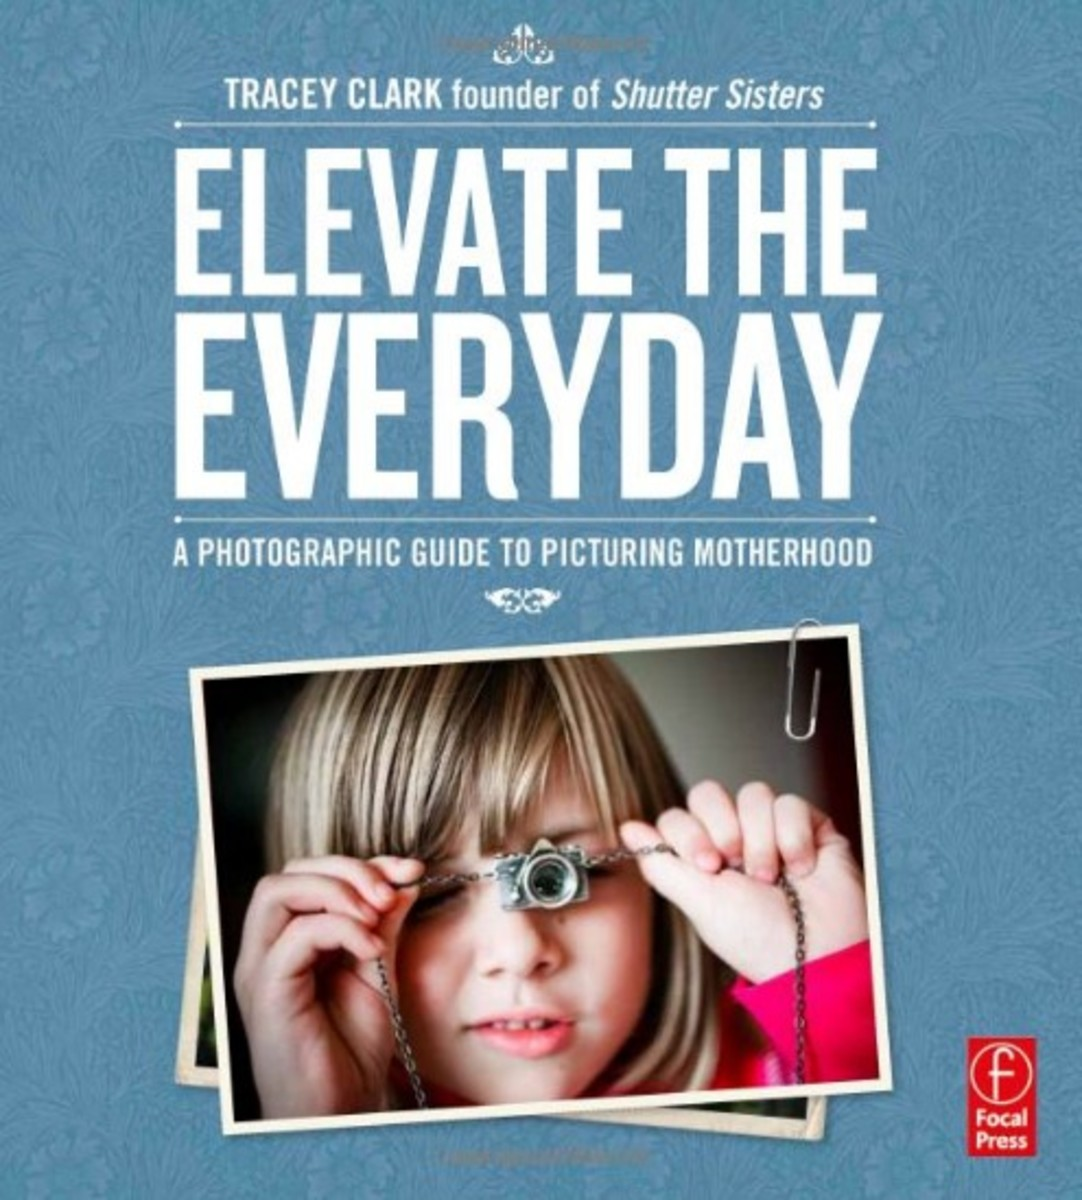 Elevate the Everyday by Tracey Clark